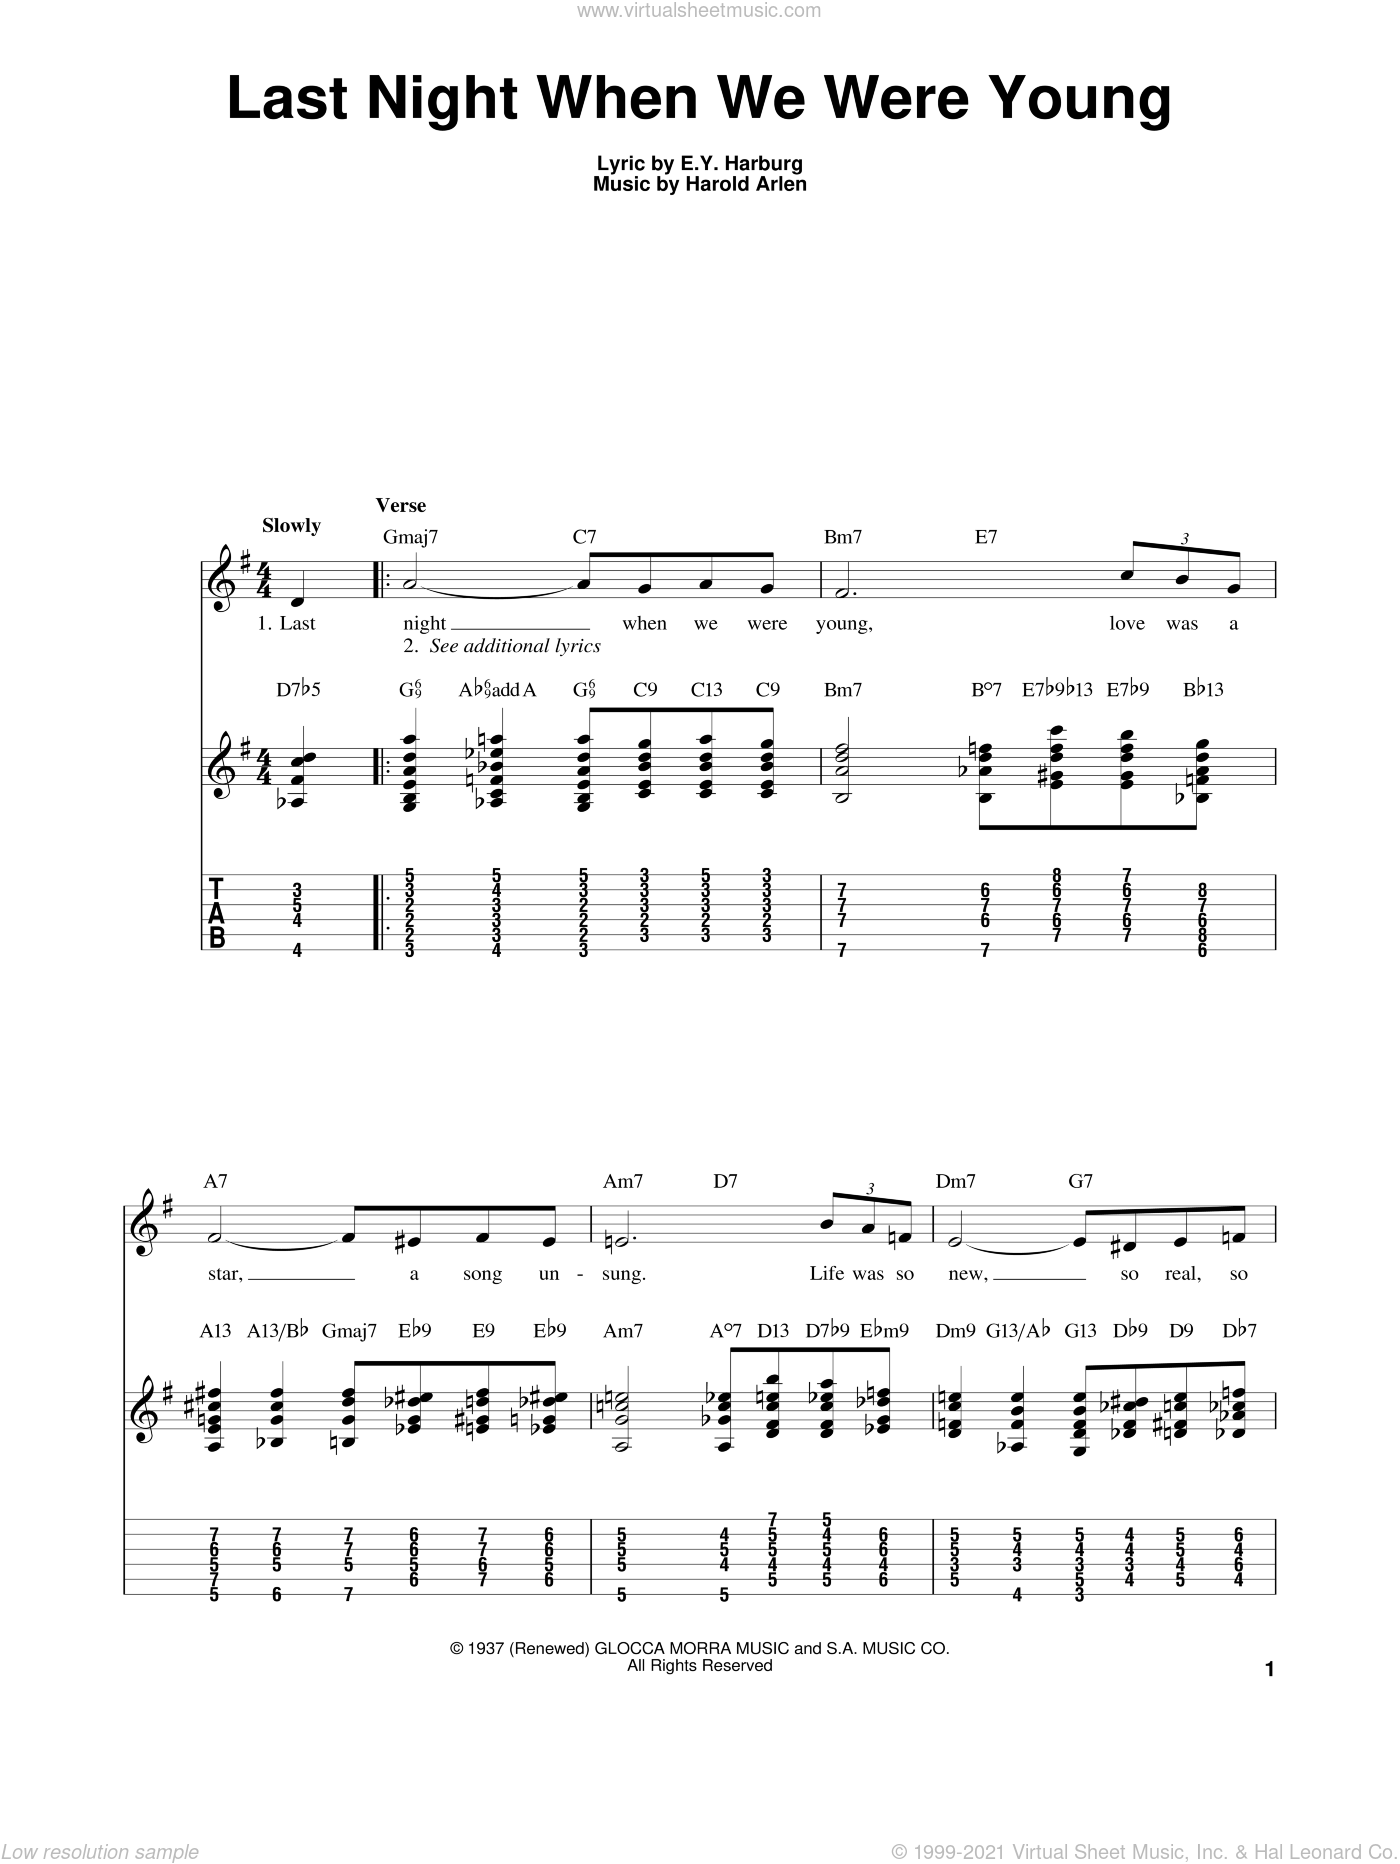 Last Night When We Were Young sheet music for guitar solo (easy tablature) by Kenny Burrell, Frank Sinatra, Judy Garland, E.Y. Harburg and Harold Arlen, easy guitar (easy tablature)